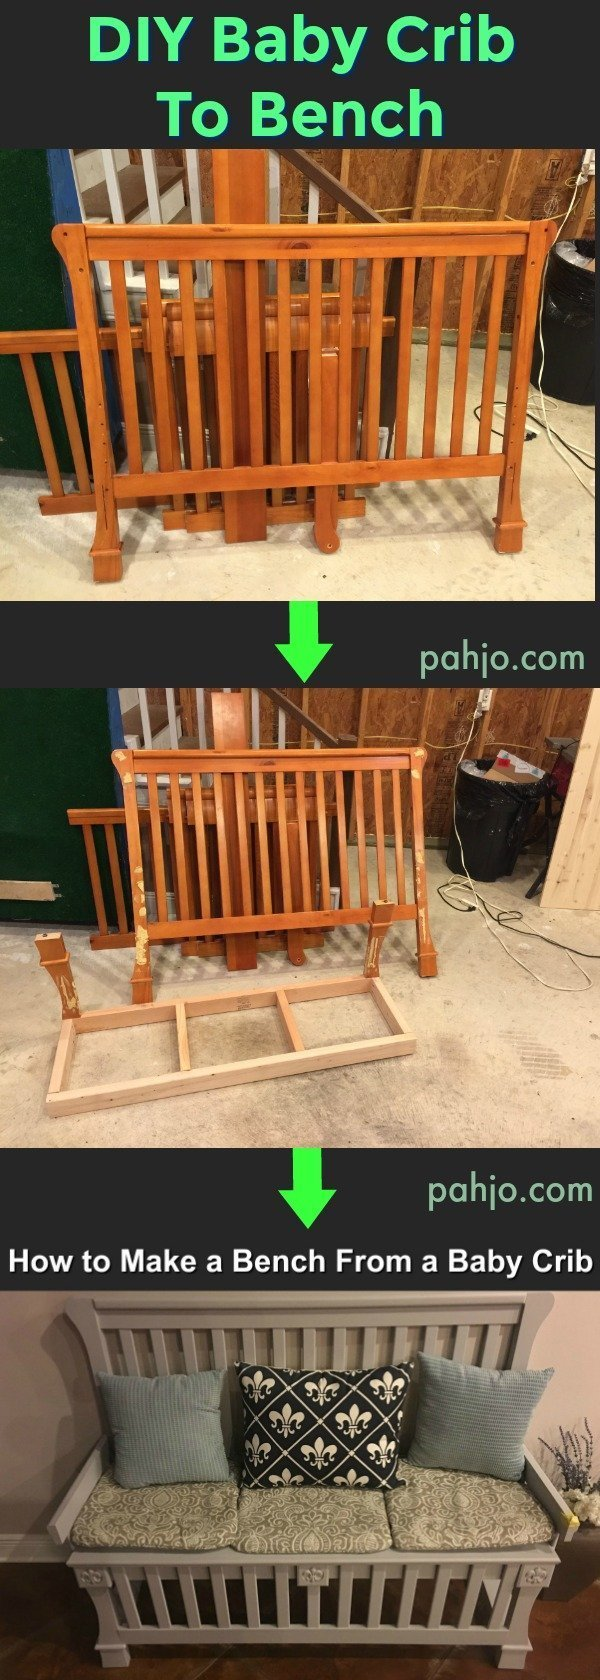 Learn How to Make a Bench out of a Baby Crib